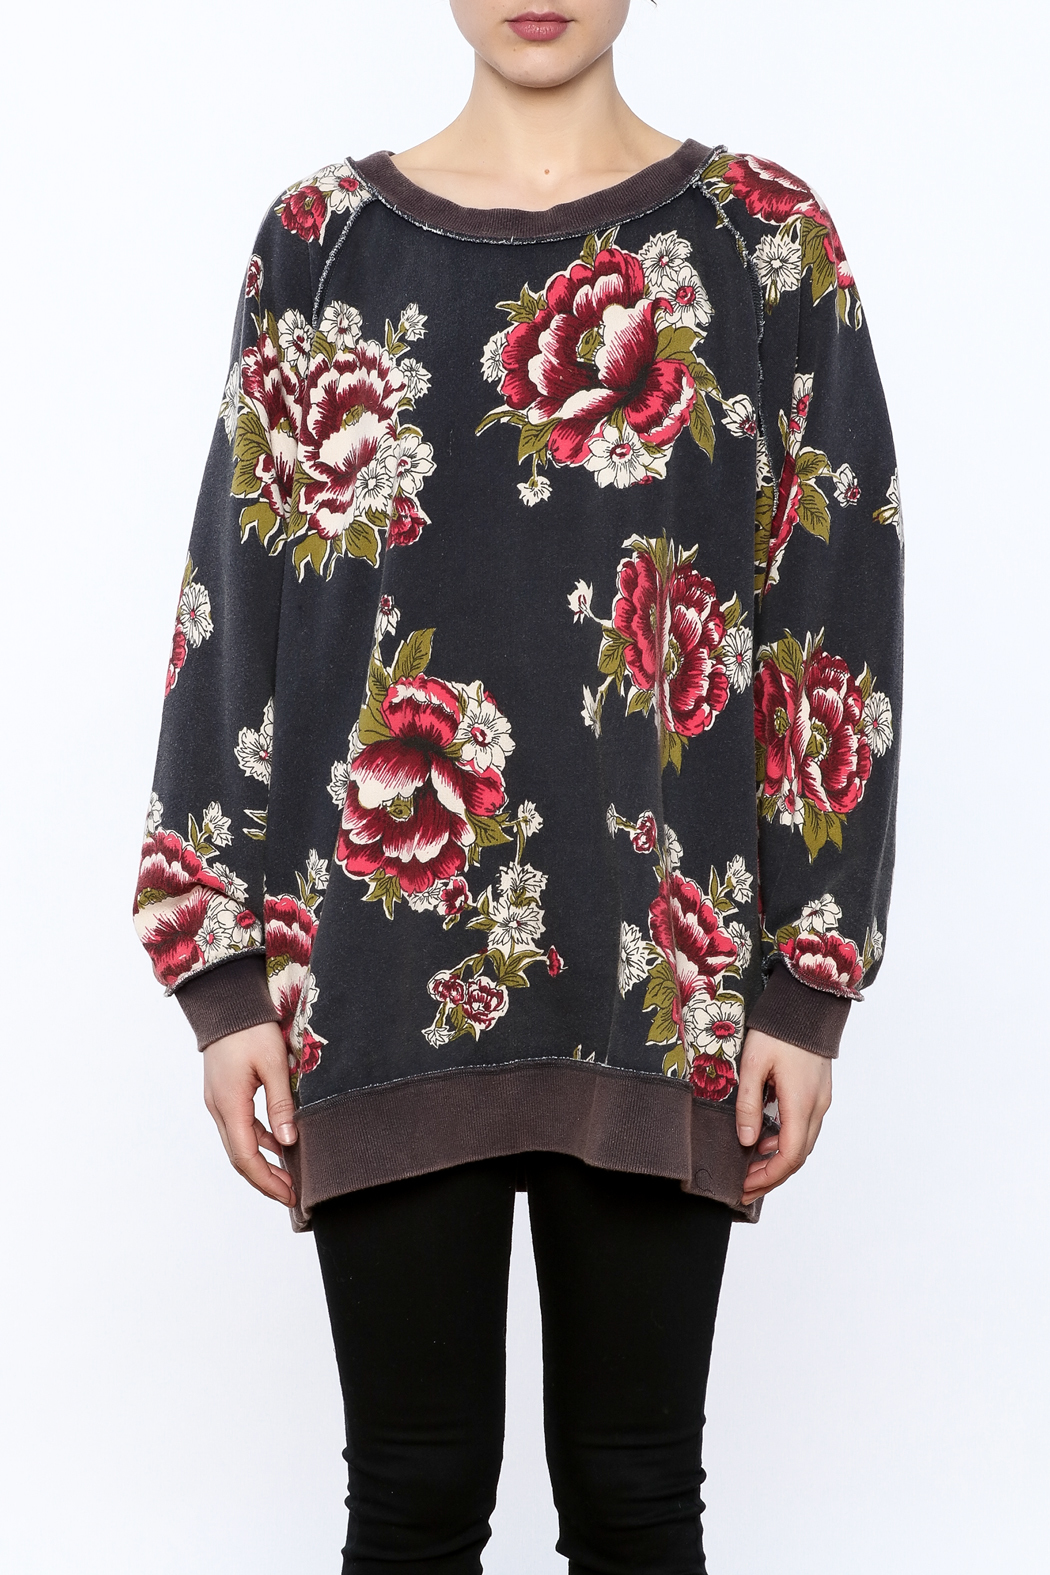 Free People Grey Floral Sweatshirt From Texas By Stephanie